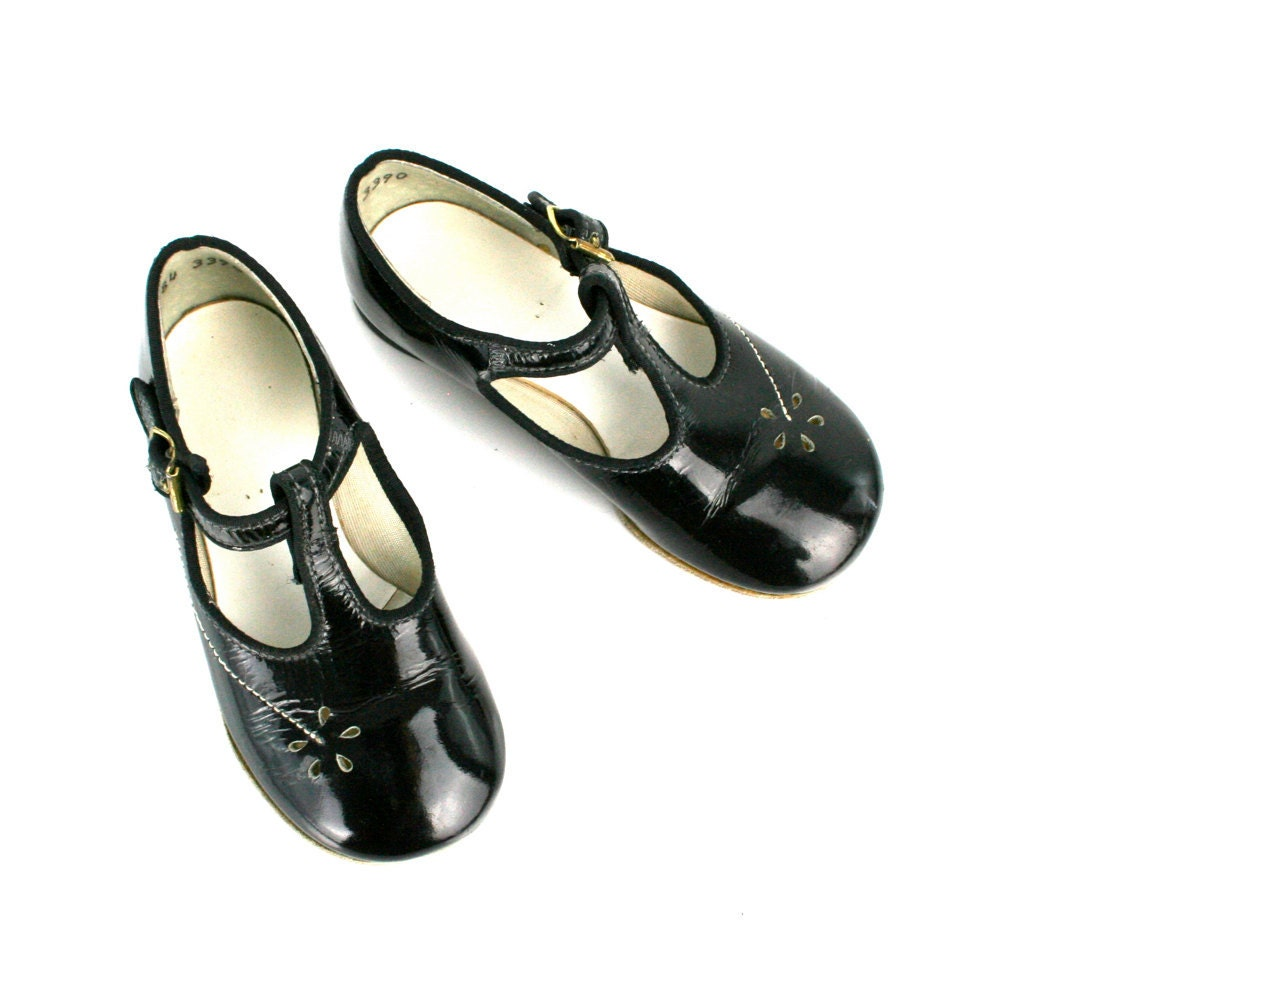 vintage baby shoes janes in black patent leather by